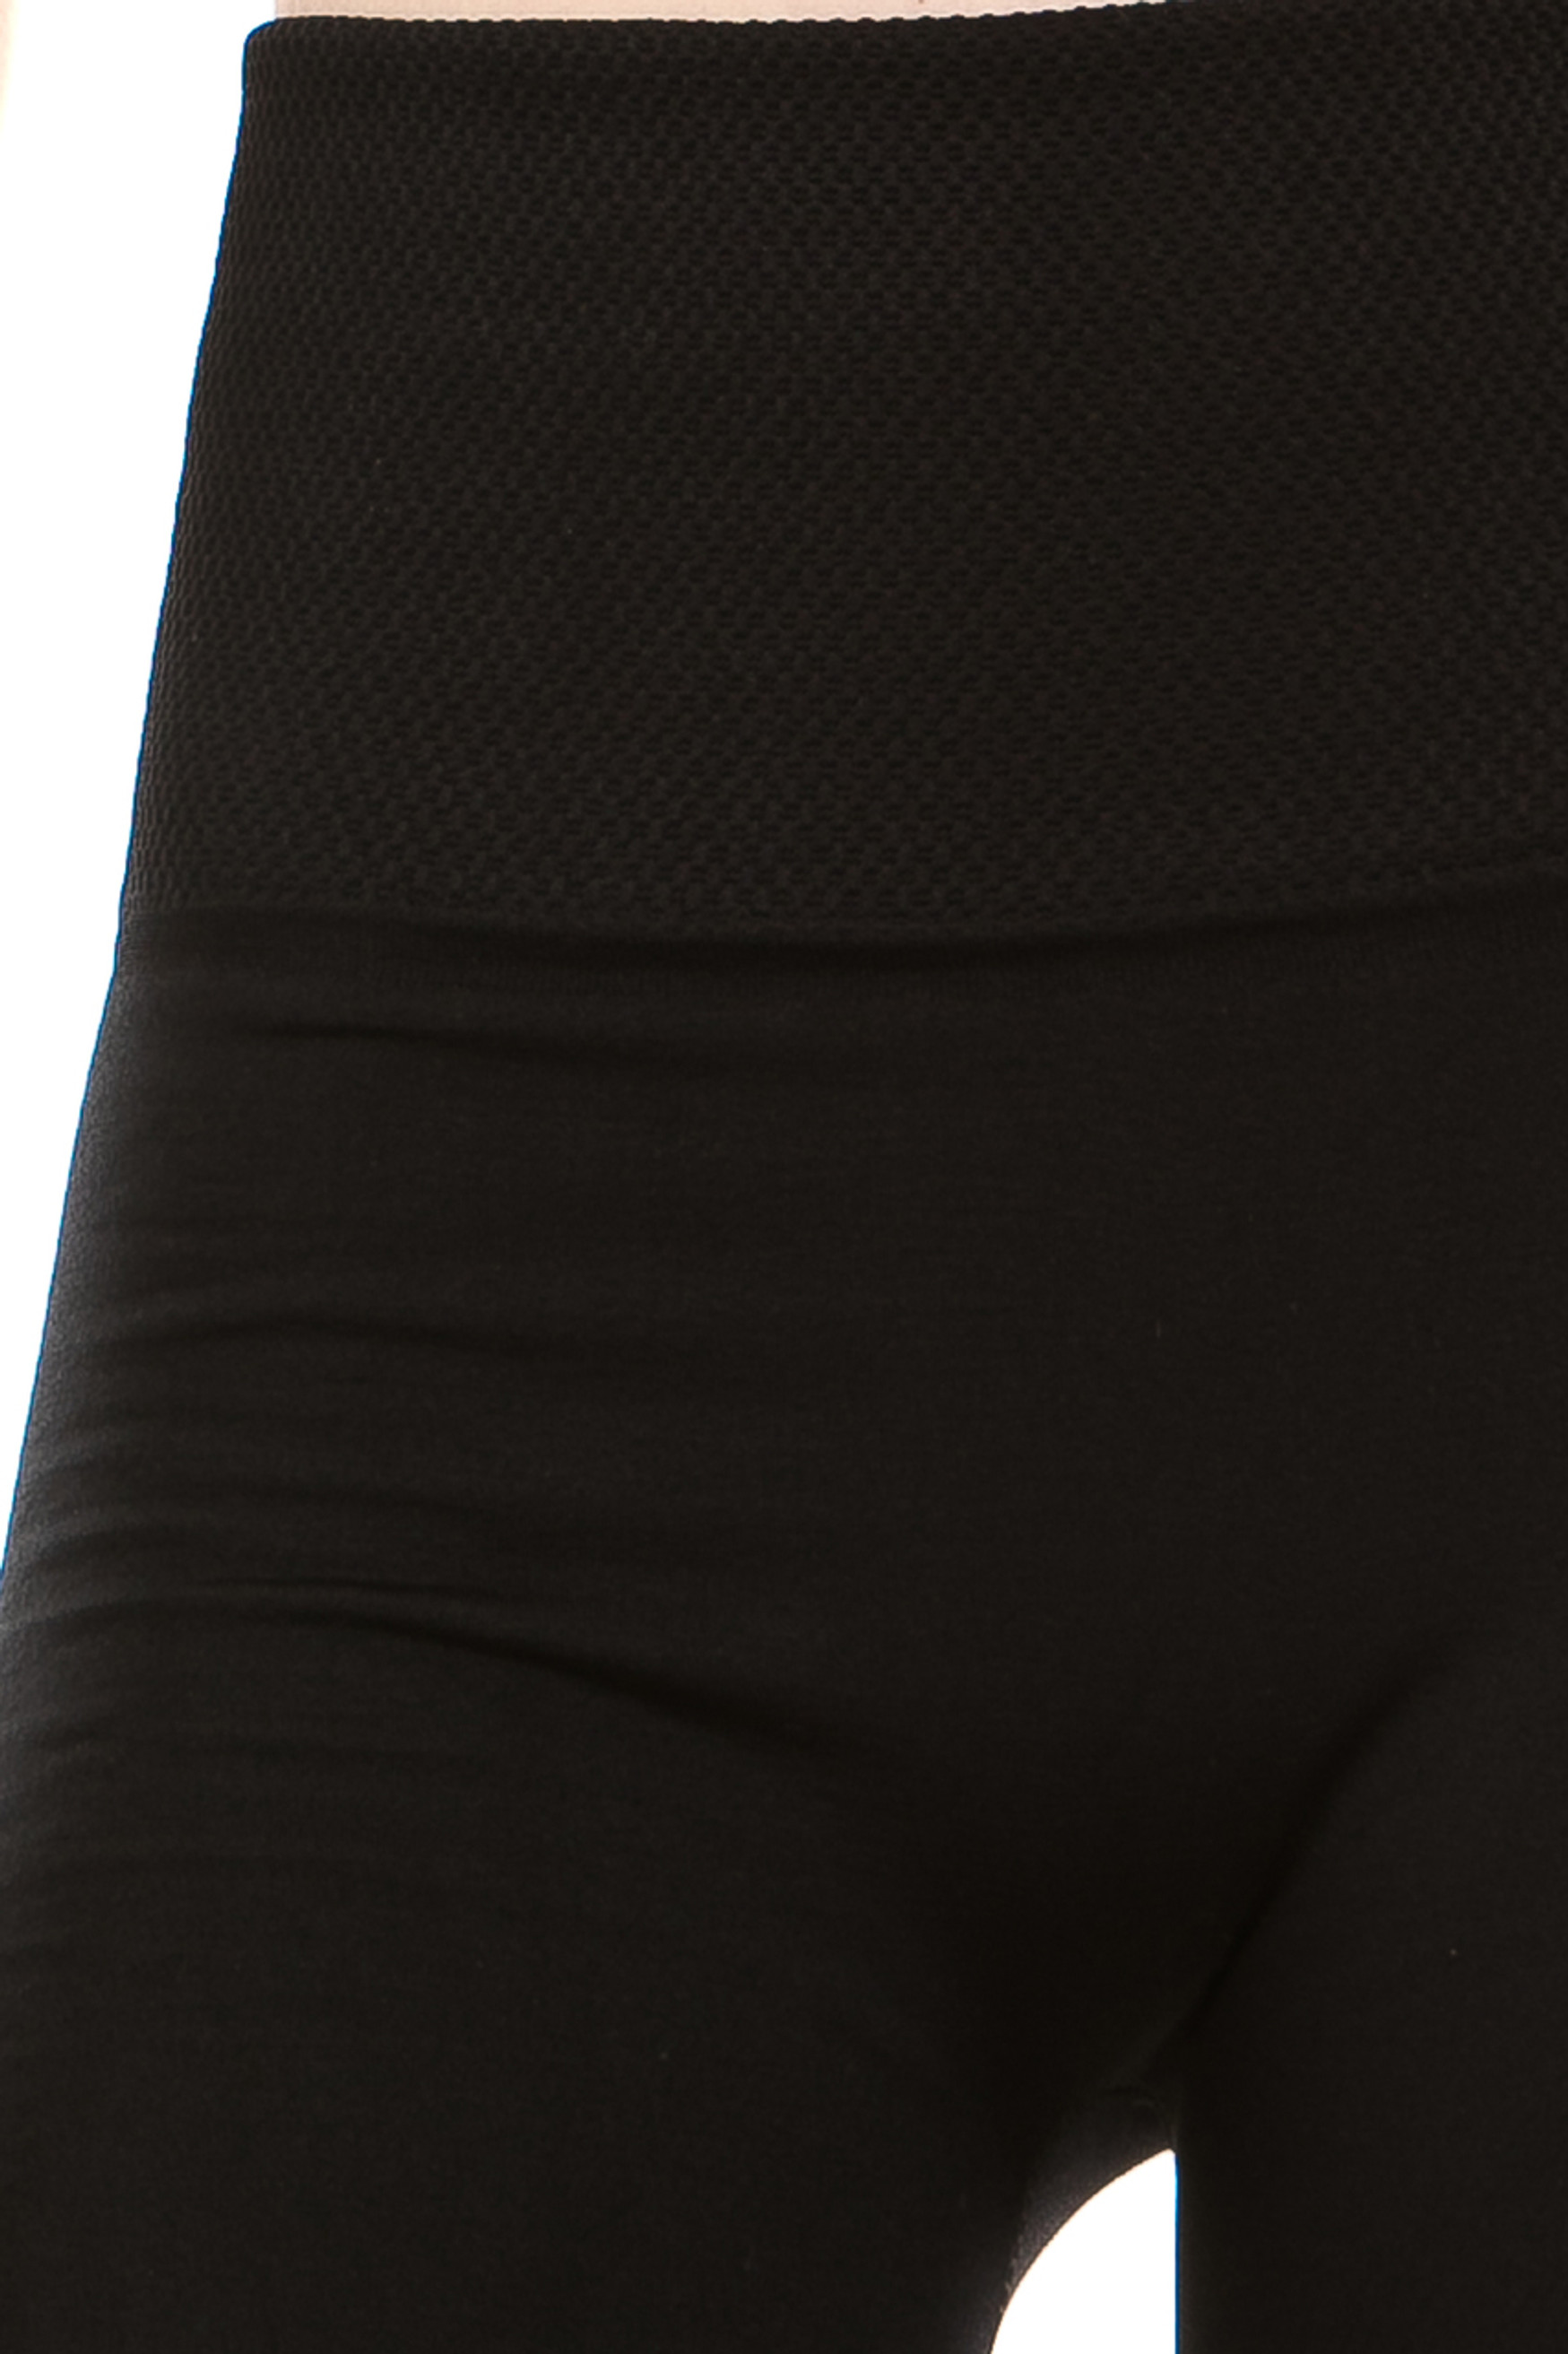 close-up image of the crotch area of our Black Banded High Waisted Fleece Lined Legging clearly showing the ribbed high waist fabric waist band and warm, tight fit and comfortable fleece fabric